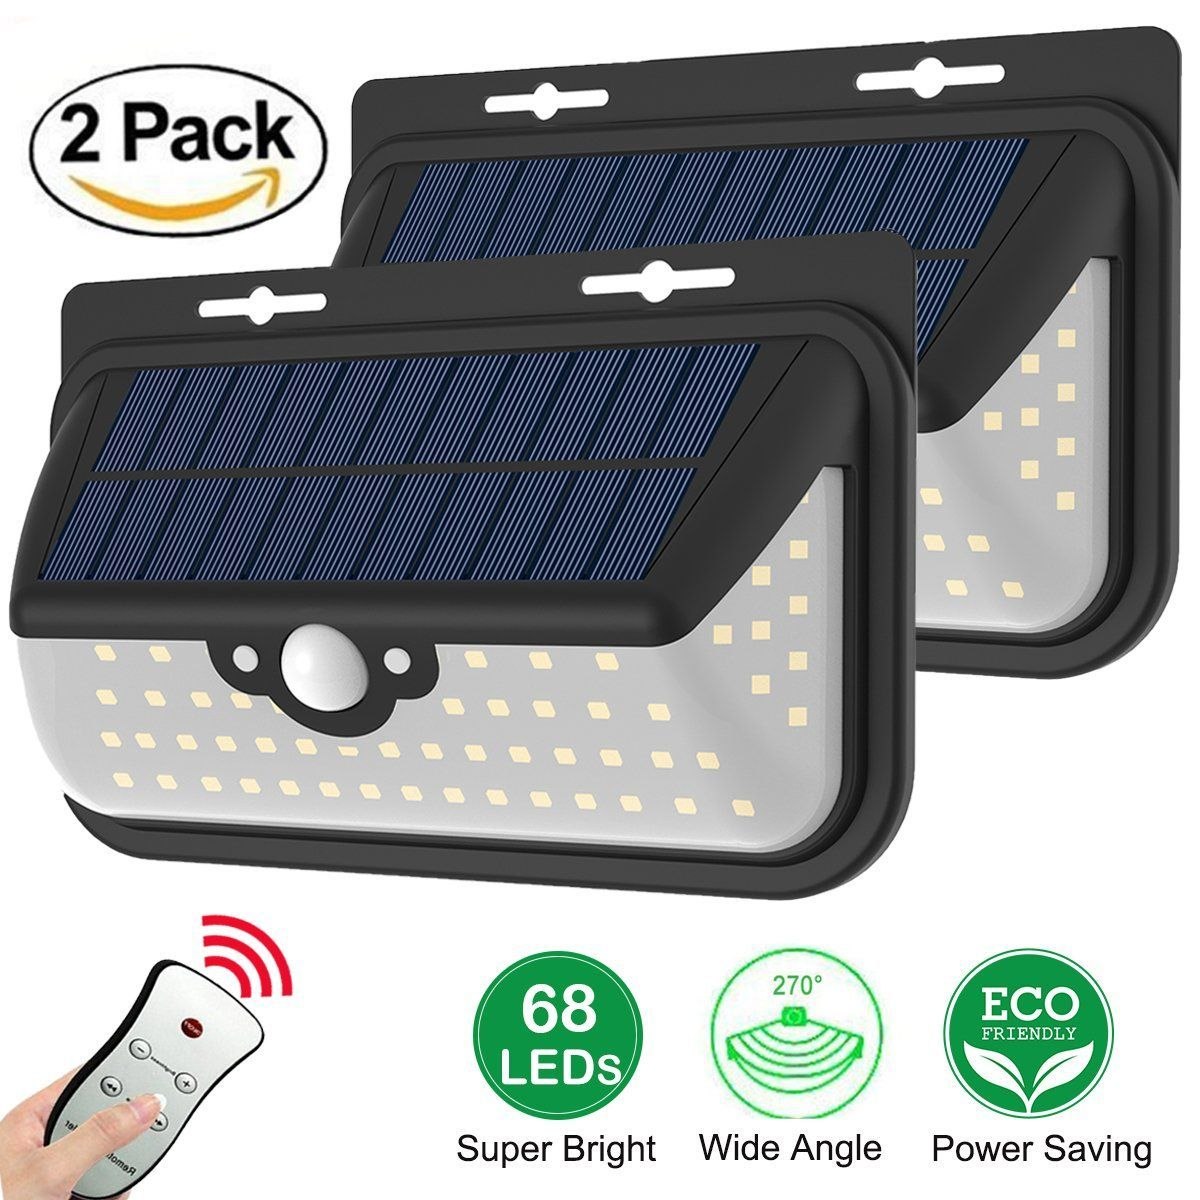 Solar lights outdoor motion sensor wall light waterproof wireless solar lights outdoor motion sensor wall light waterproof wireless solar powered security light with remote control aloadofball Image collections